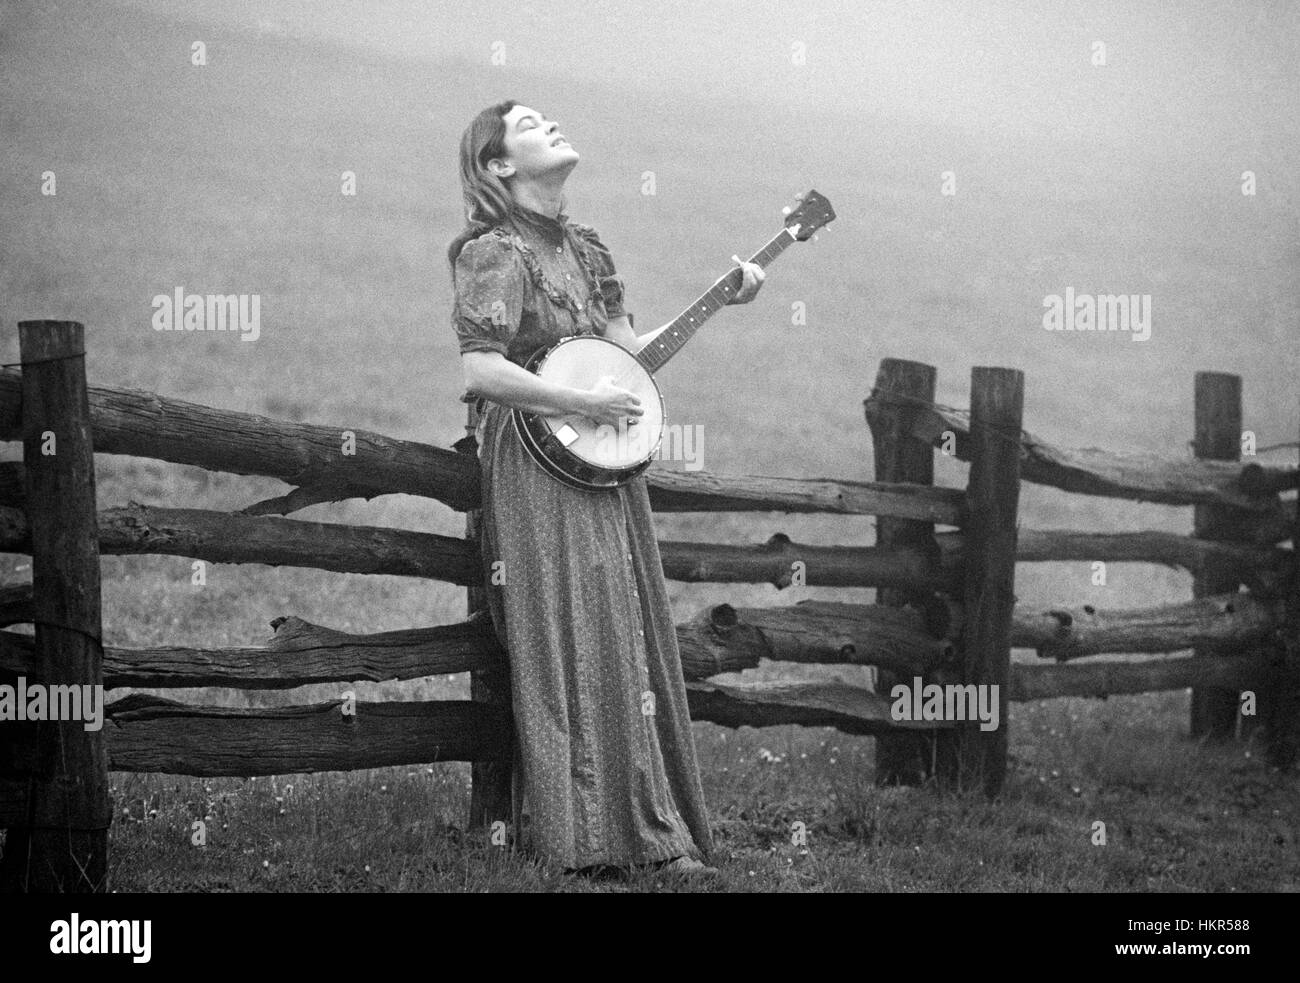 A young woman and her banjo in a misty farm field high in the Blue Ridge Mountains of North Carolina, early morning - Stock Image